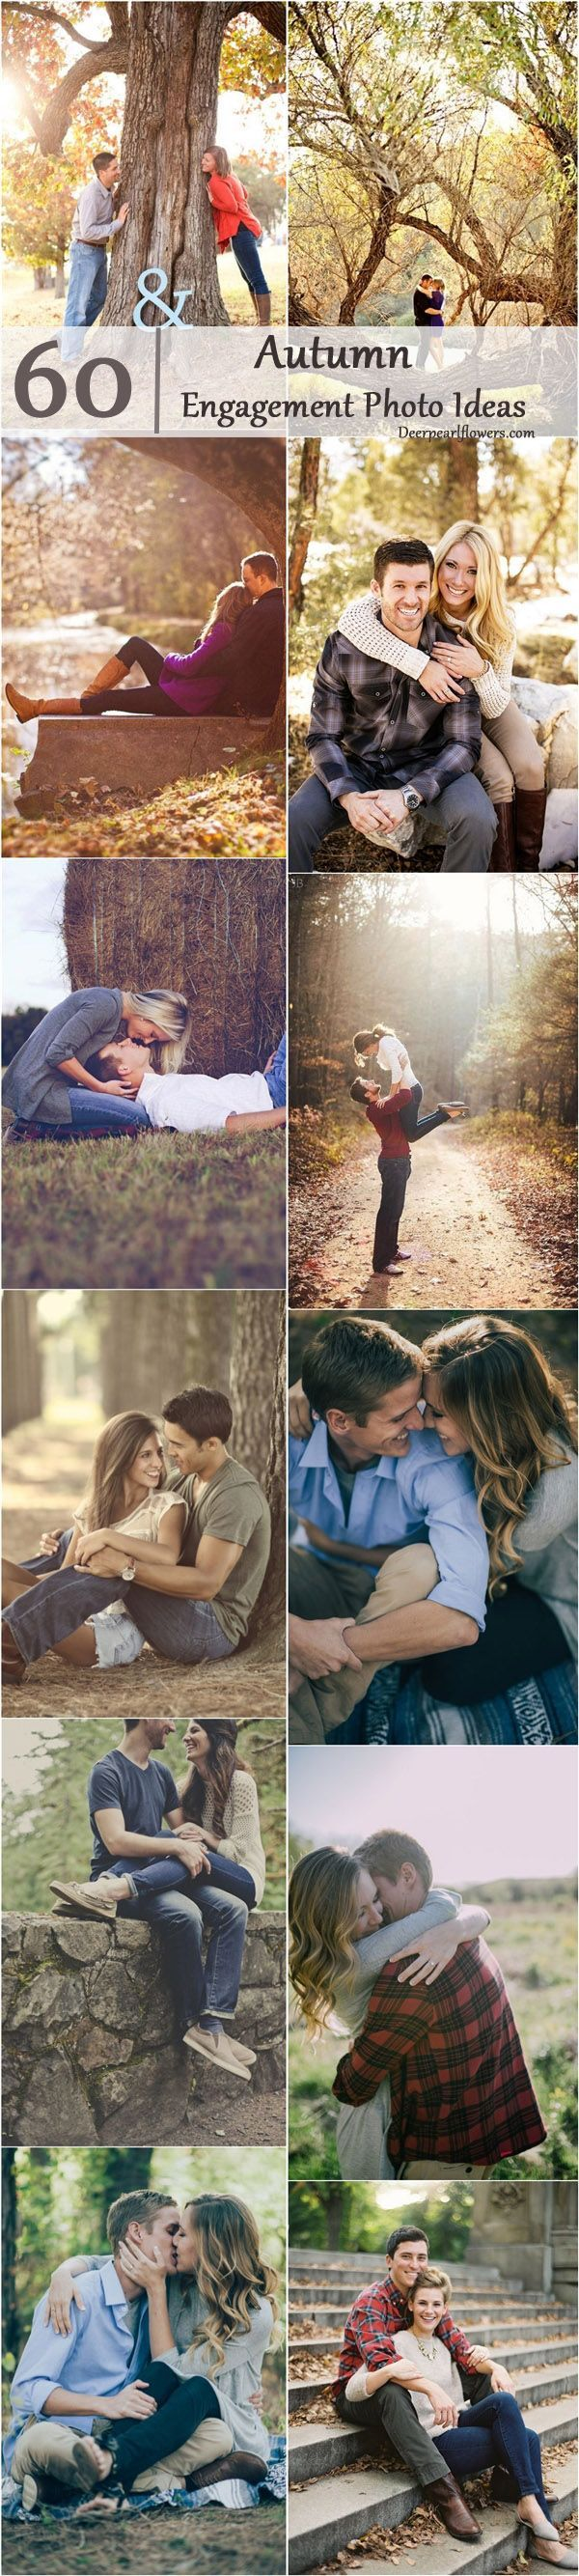 Fall Engagement Photo Shoot and Poses Ideas / http://www.deerpearlflowers.com/fall-engagement-photo-ideas/